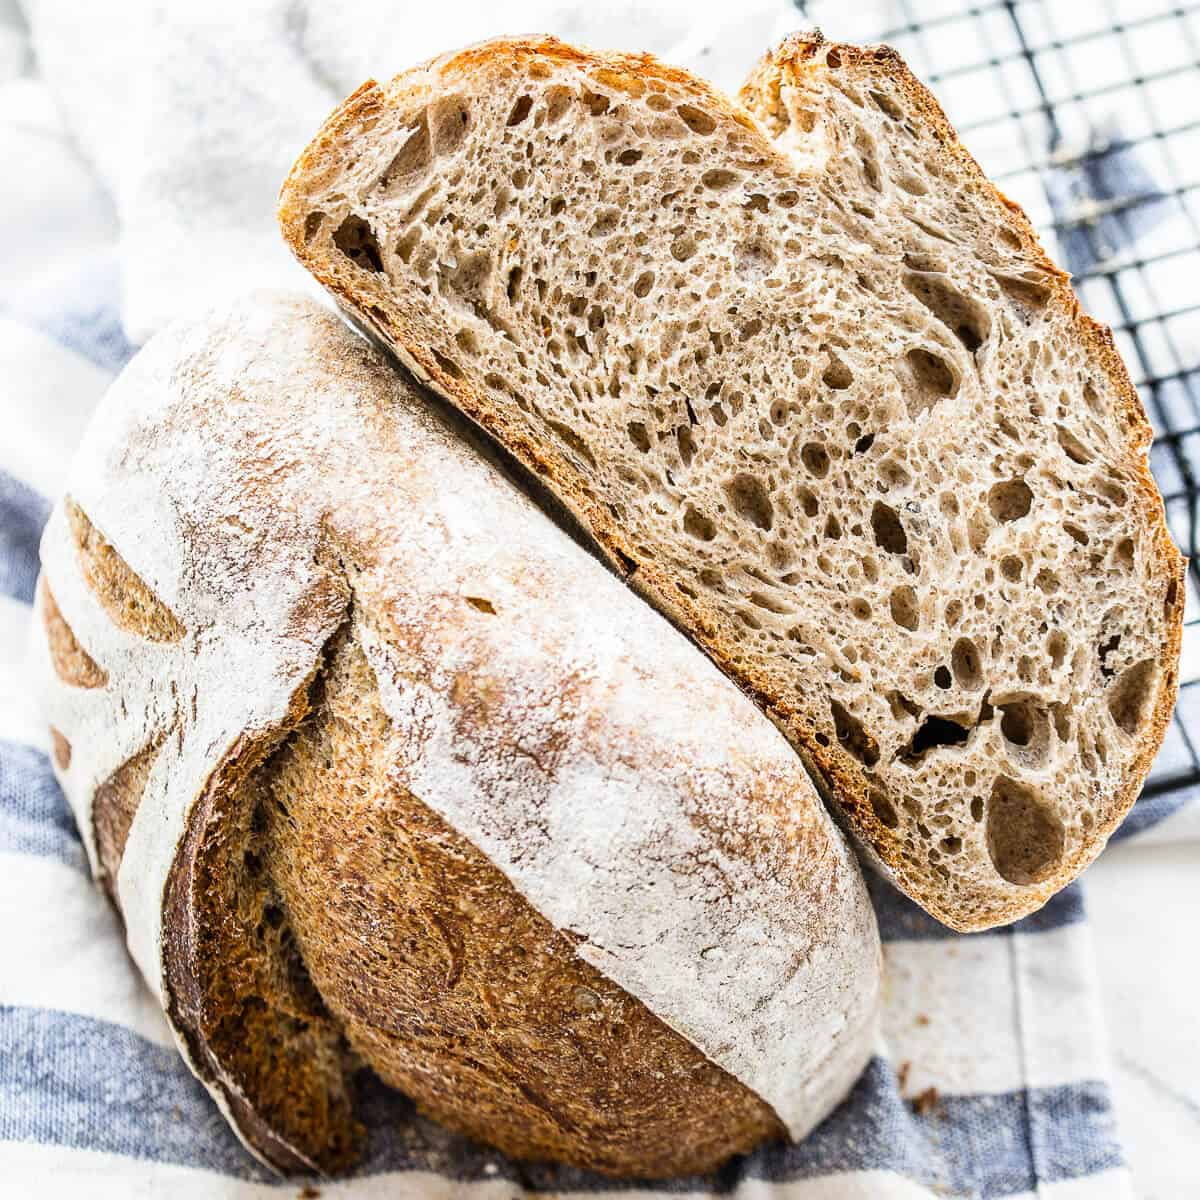 flaxseed meal sourdough bread cut in half on striped kitchen towel